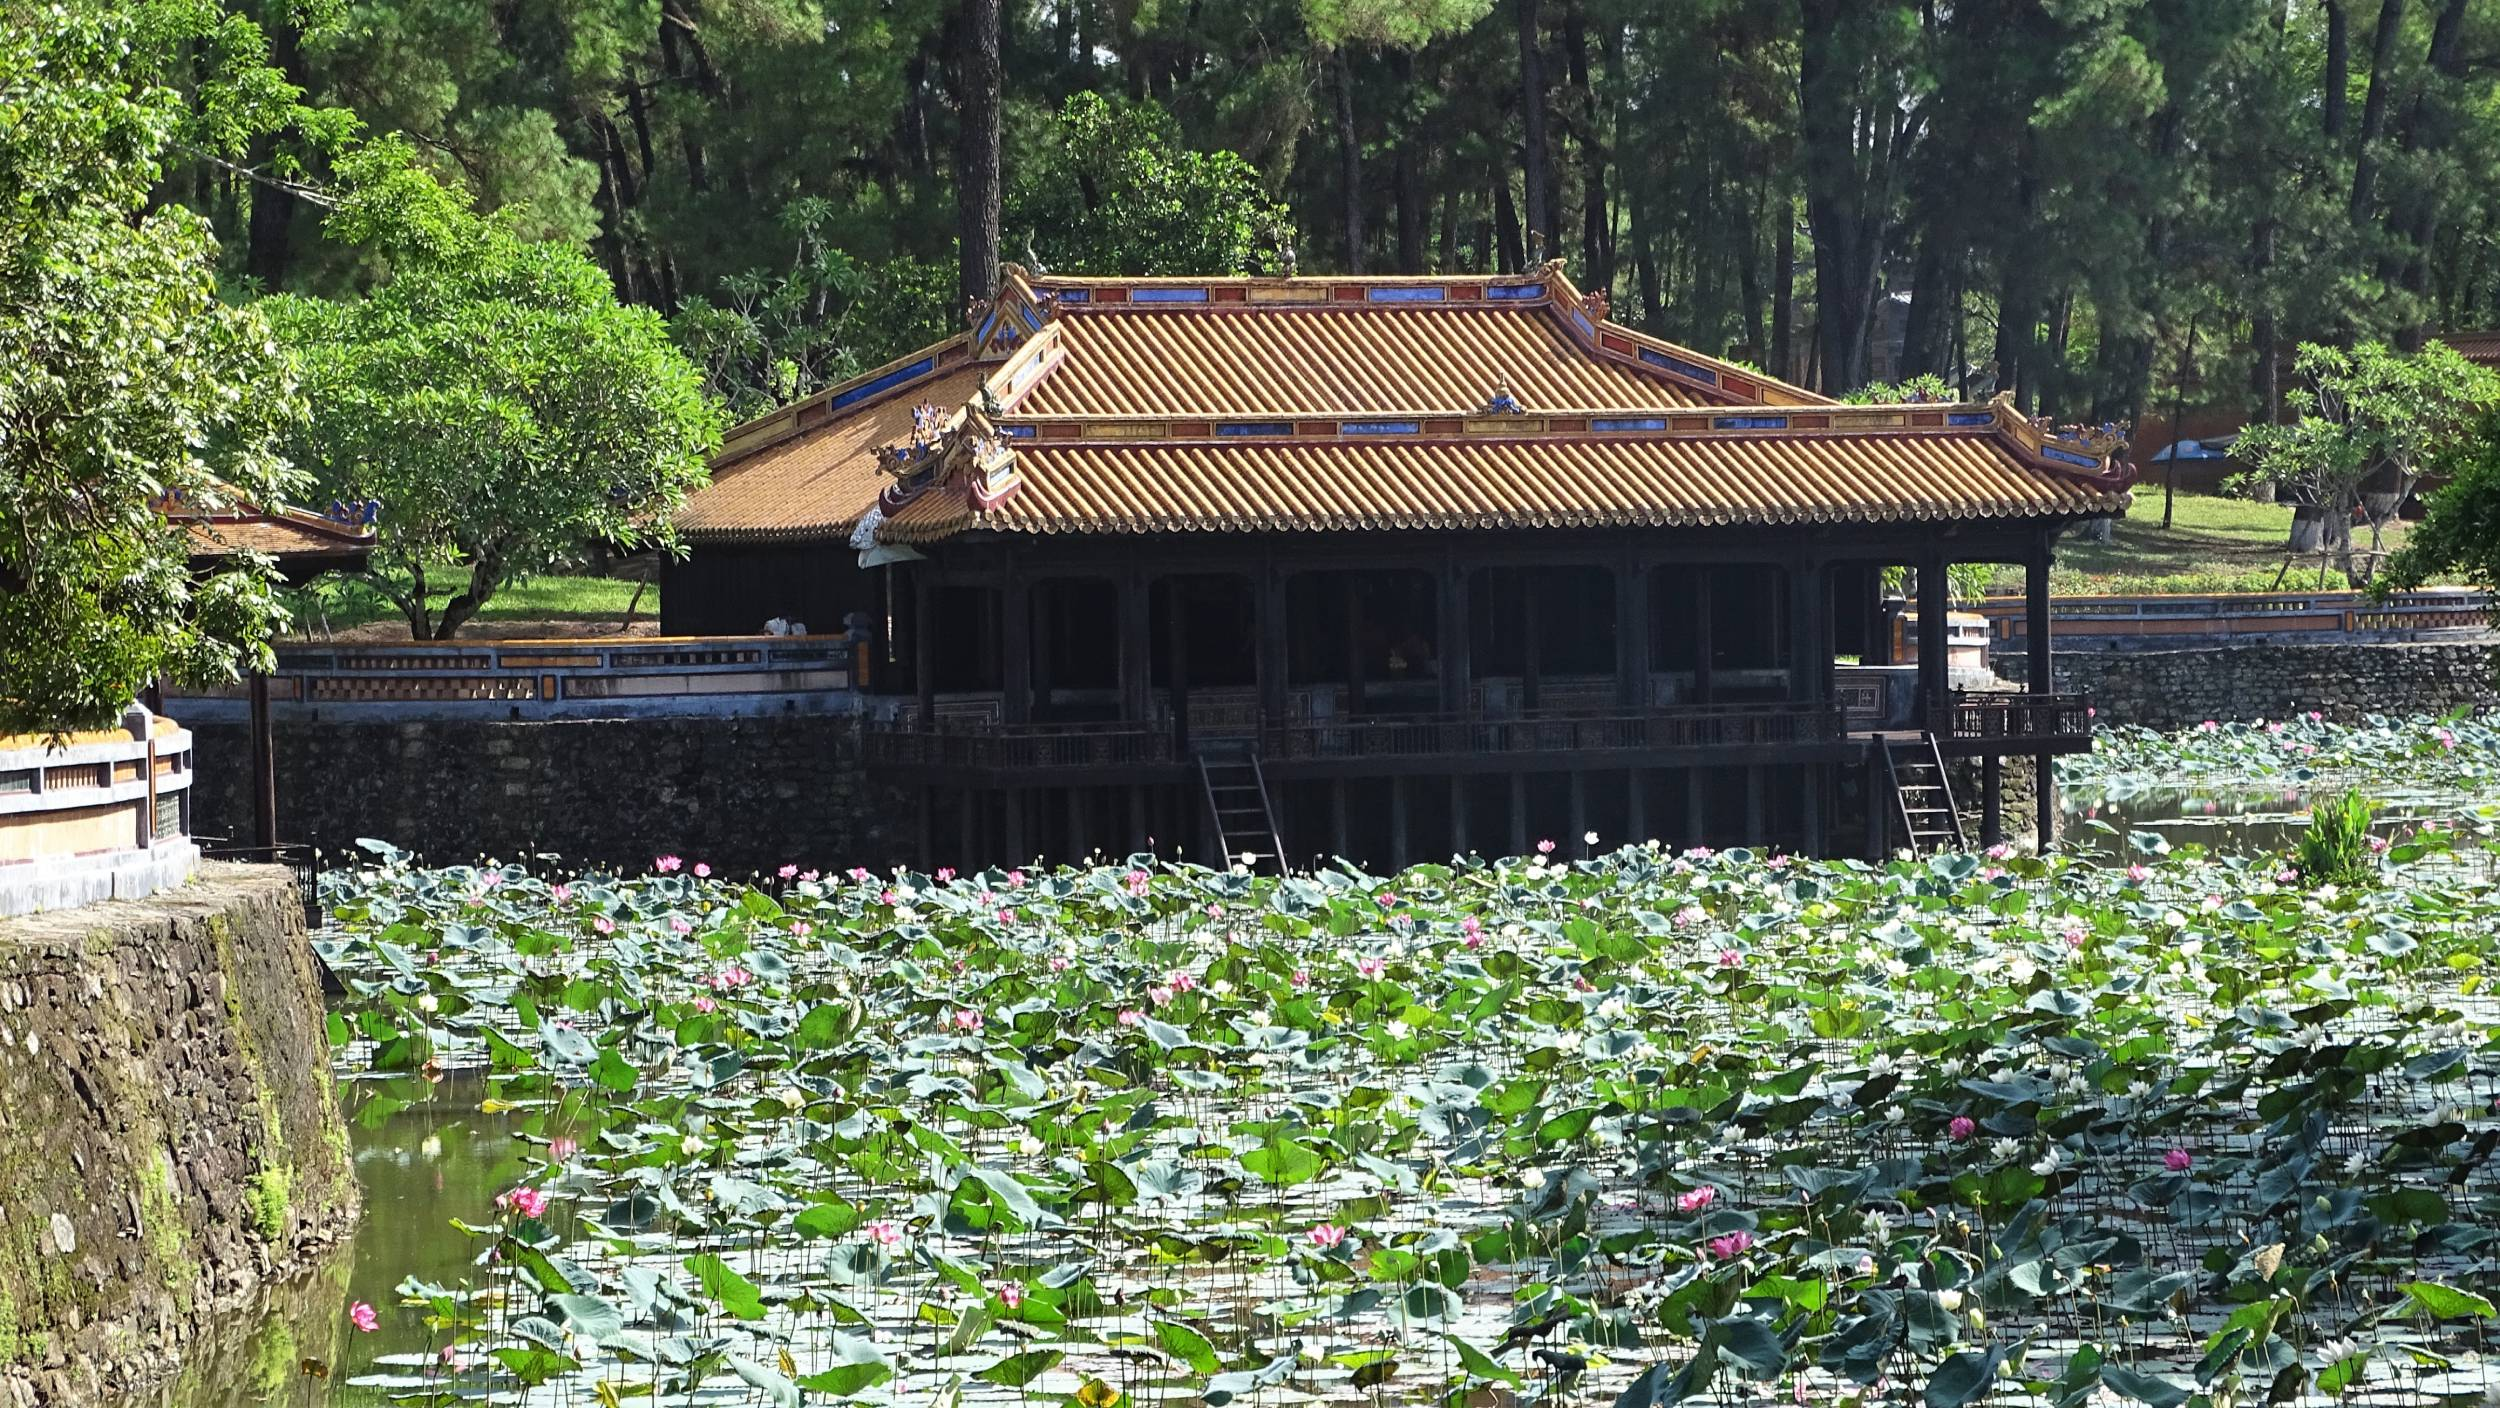 A wooden pavilion on a pond full of lotus flowers at the Tu Duc tomb